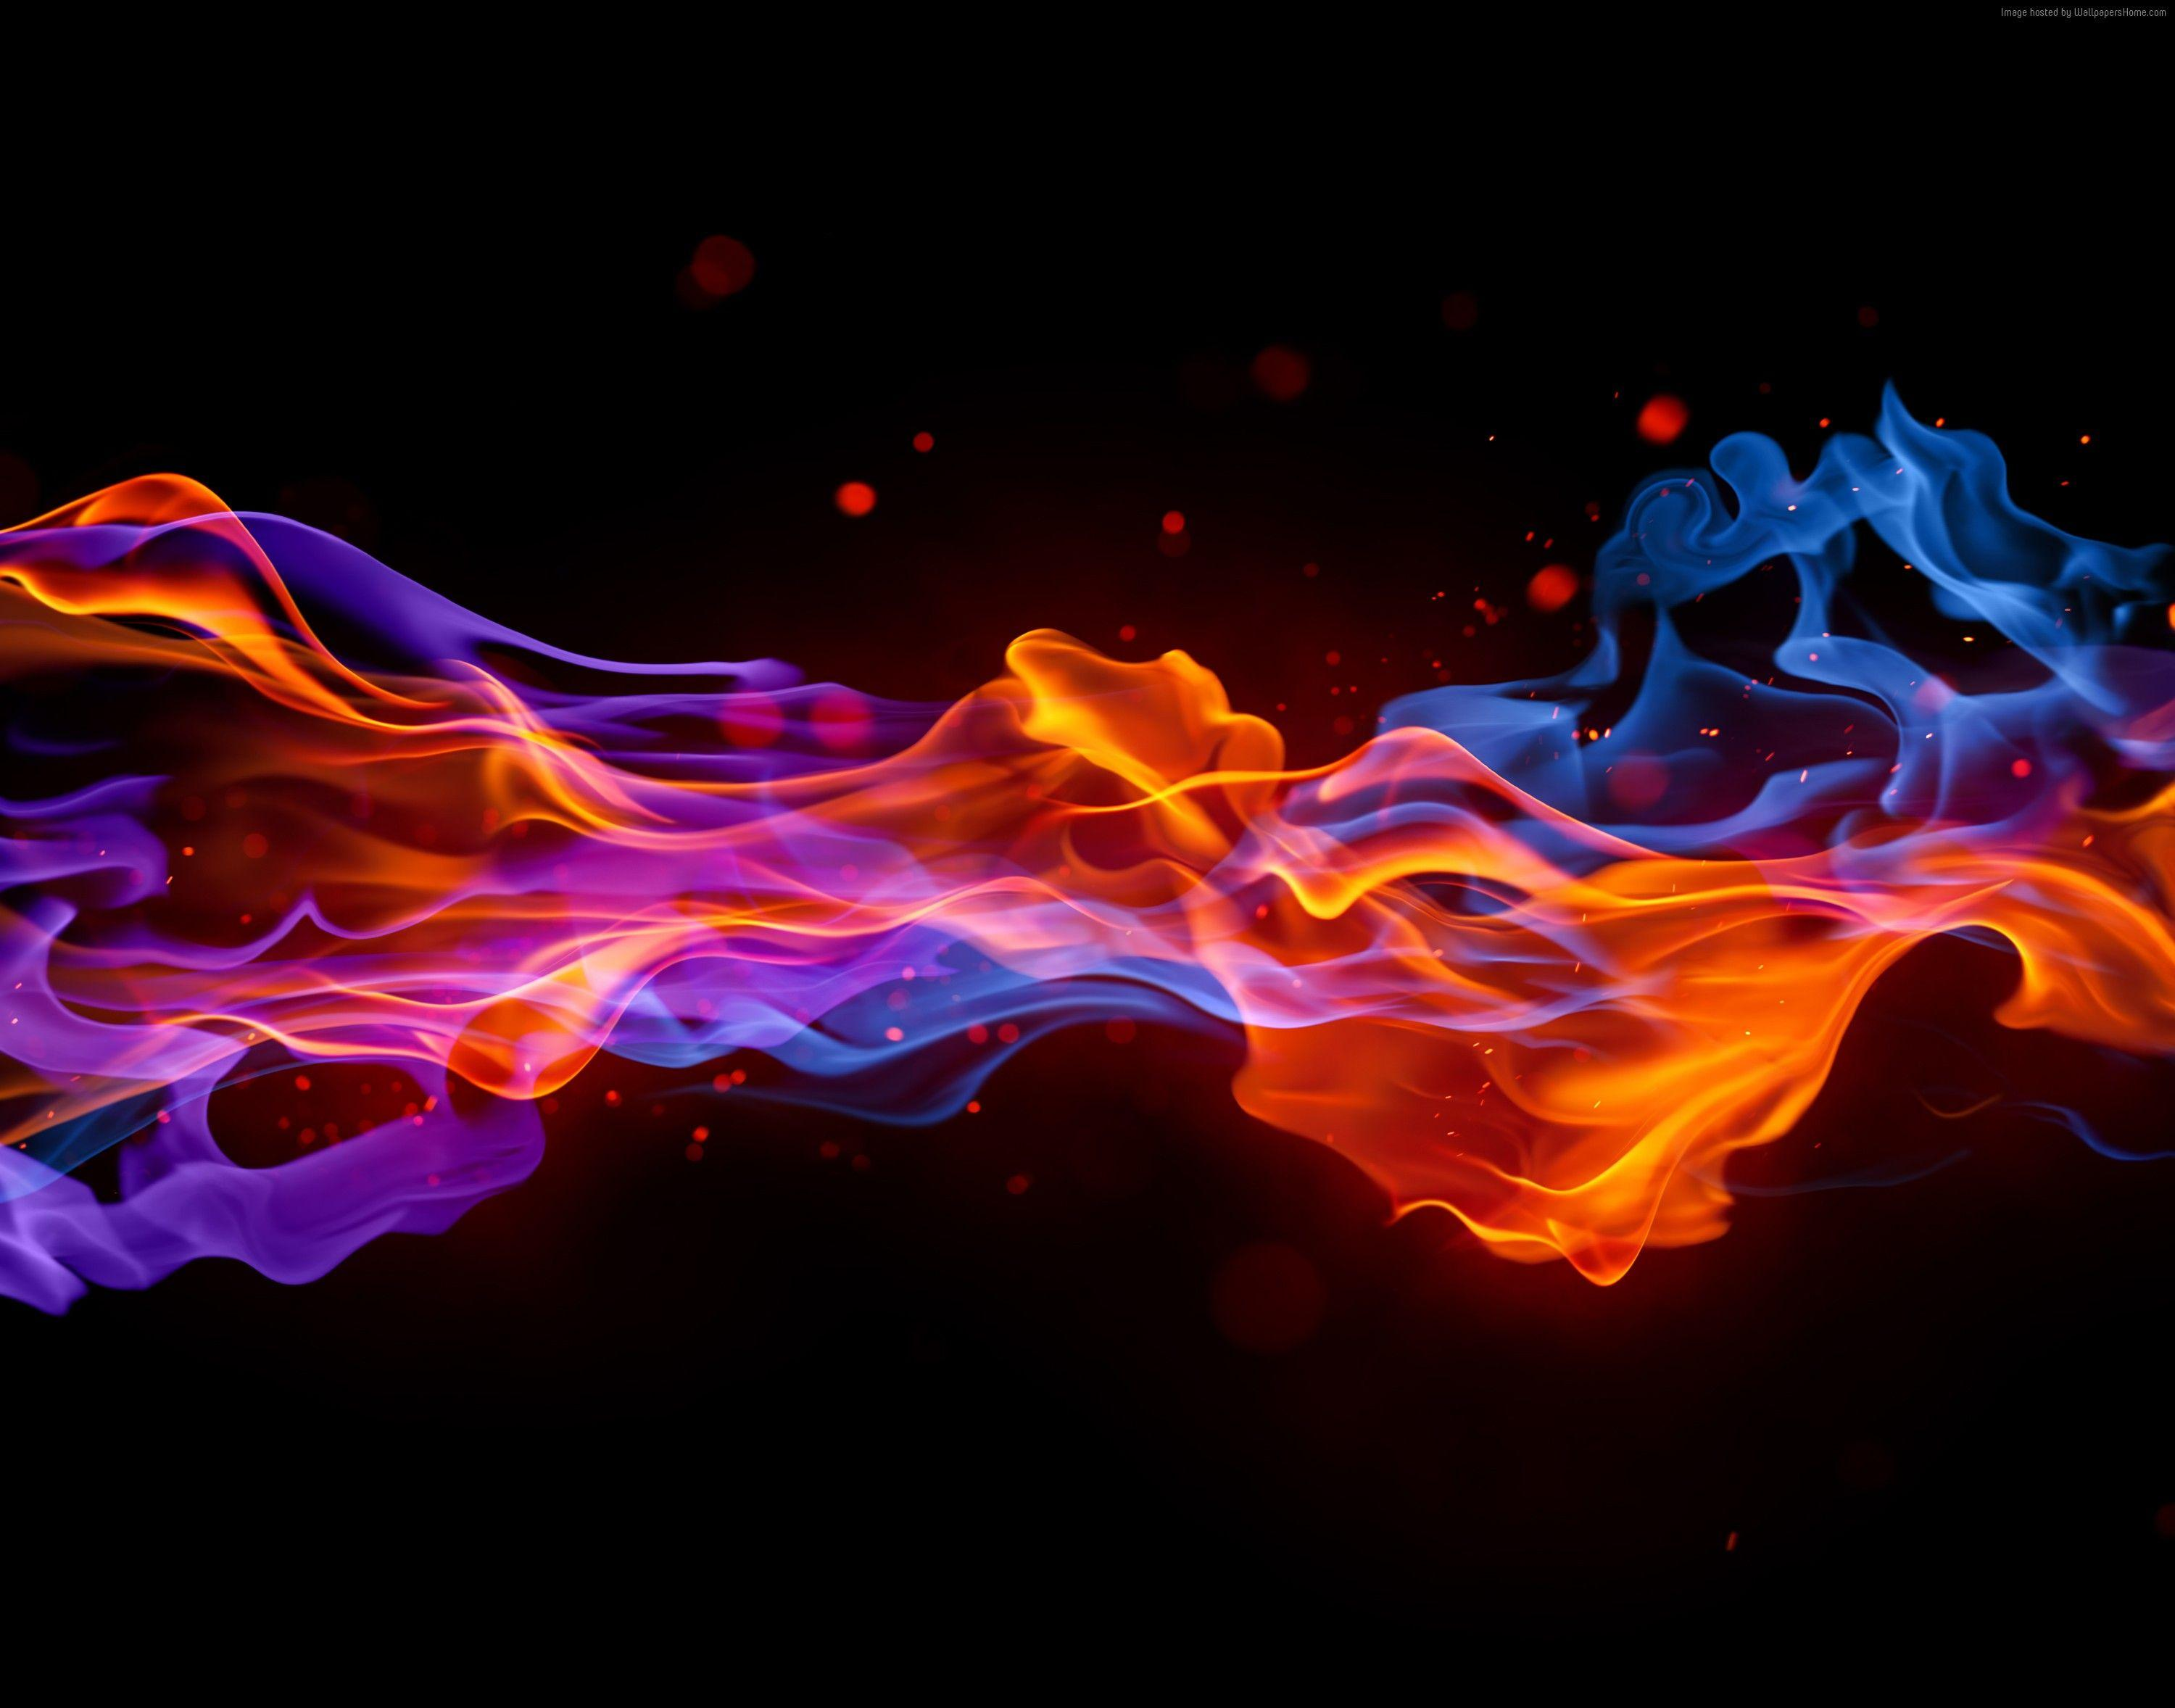 Neon Fire Wallpapers Top Free Neon Fire Backgrounds Wallpaperaccess